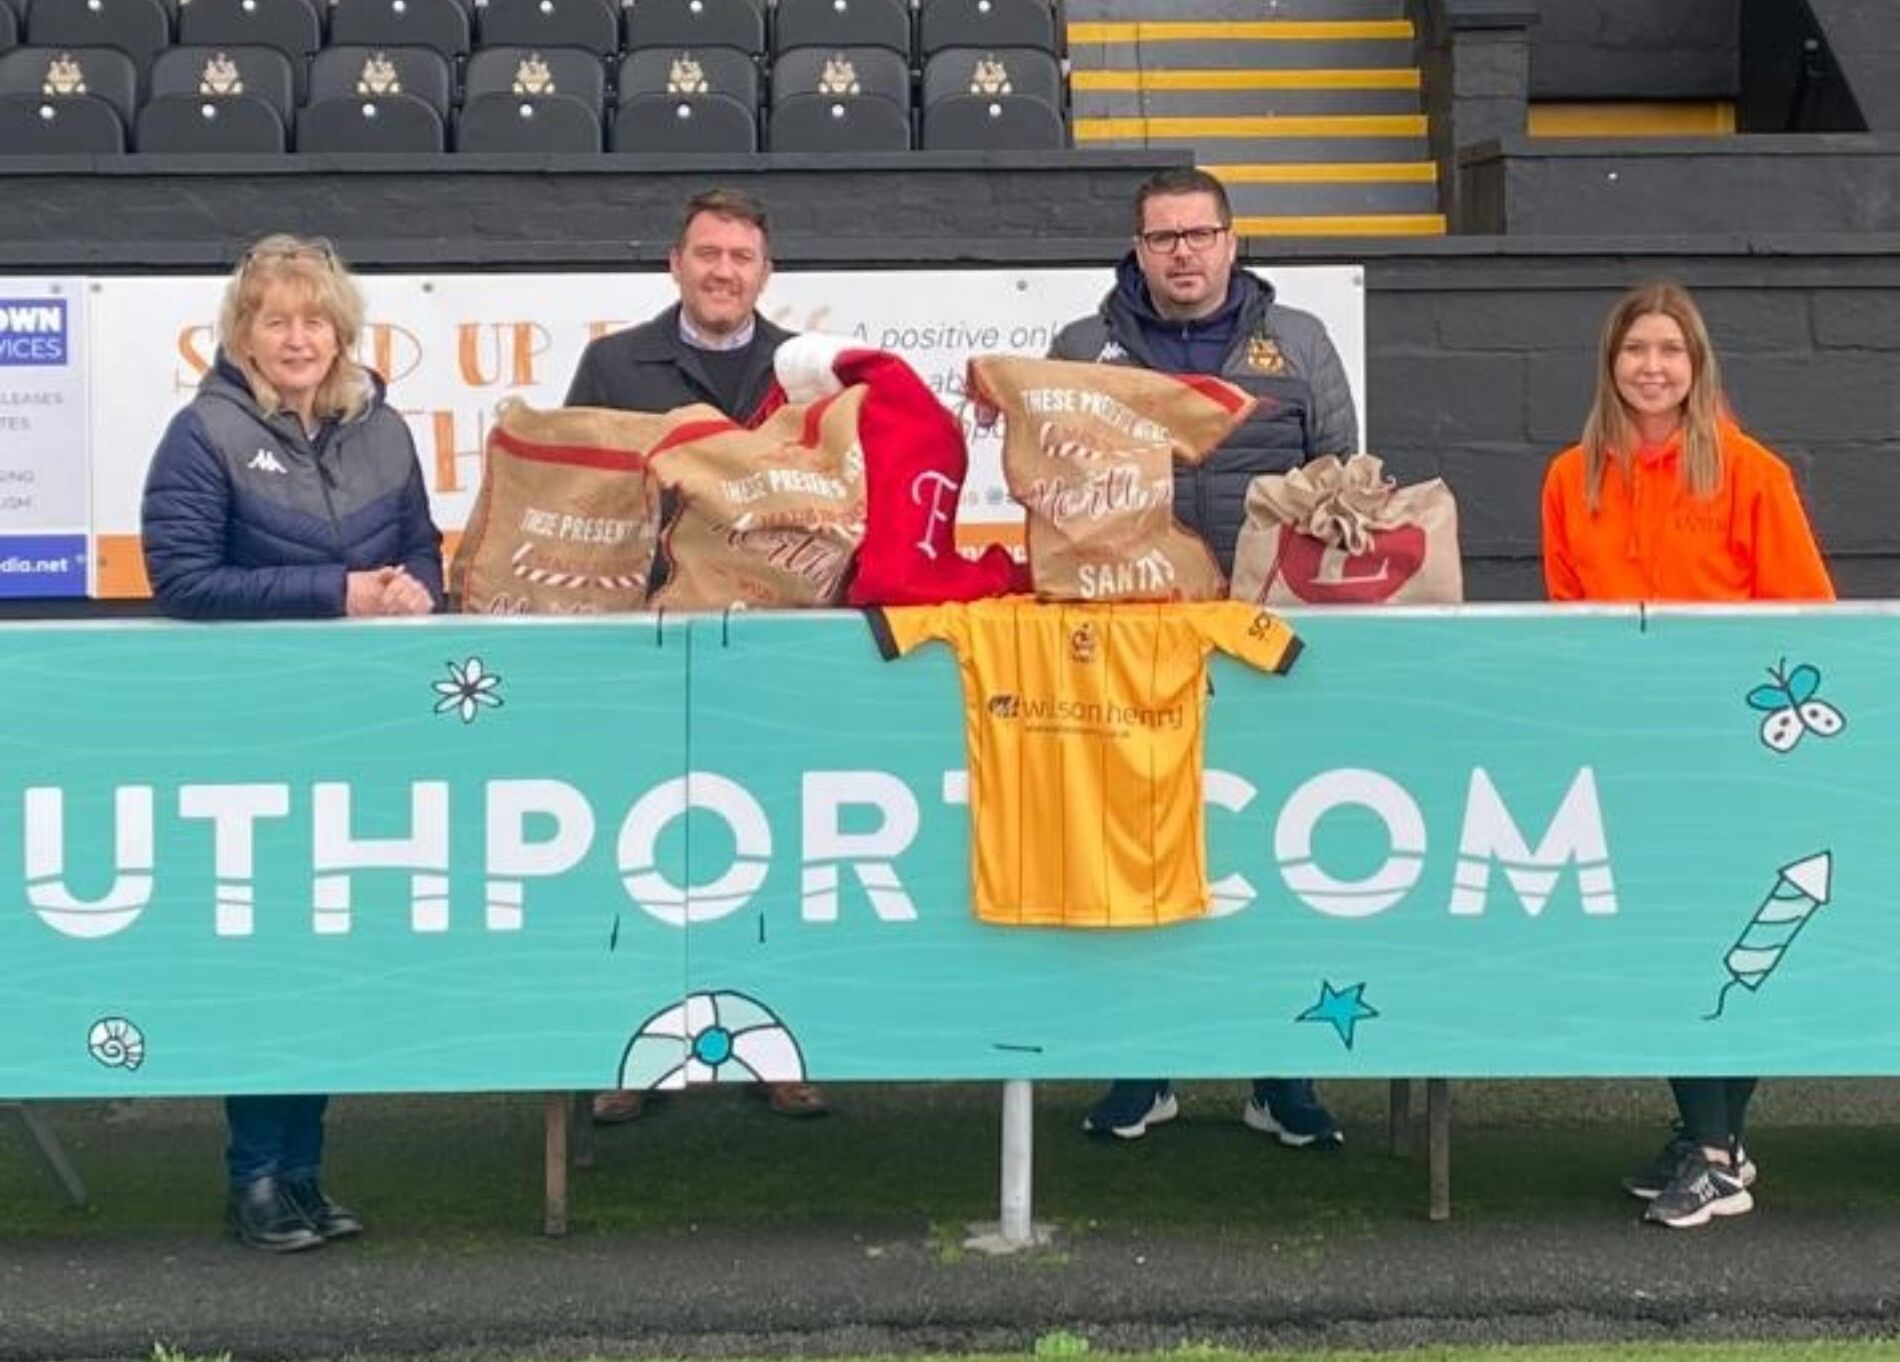 Southport Football Club and Southport Football Club Charity Foundation are delighted to partner with Express Performing Arts Academy and open their doors to act as a collection centre for the Southport Community Christmas Fill A Stocking Appeal. Pictured are Christine Classon, SFC Community Trust, Gavvin McGuire, P&F Churchtown, James Tedford Head Of Operations Southport FC and Danielle Clark Express Performing Arts Academy.